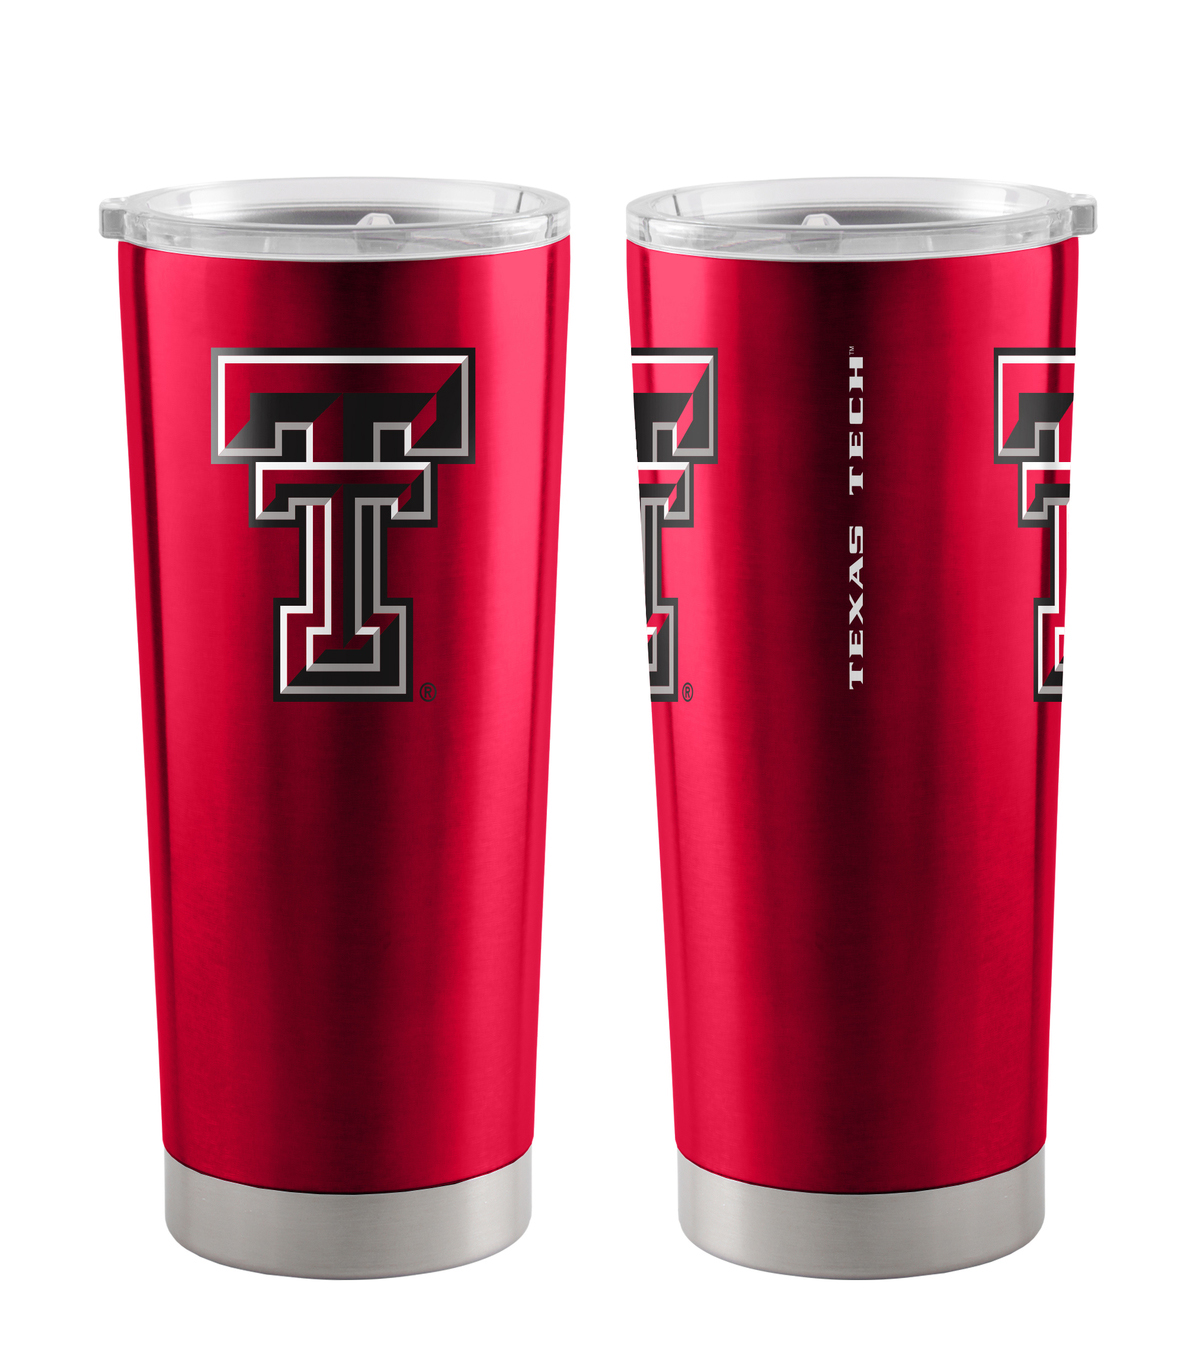 Texas Tech University 20 oz Insulated Stainless Steel Tumbler